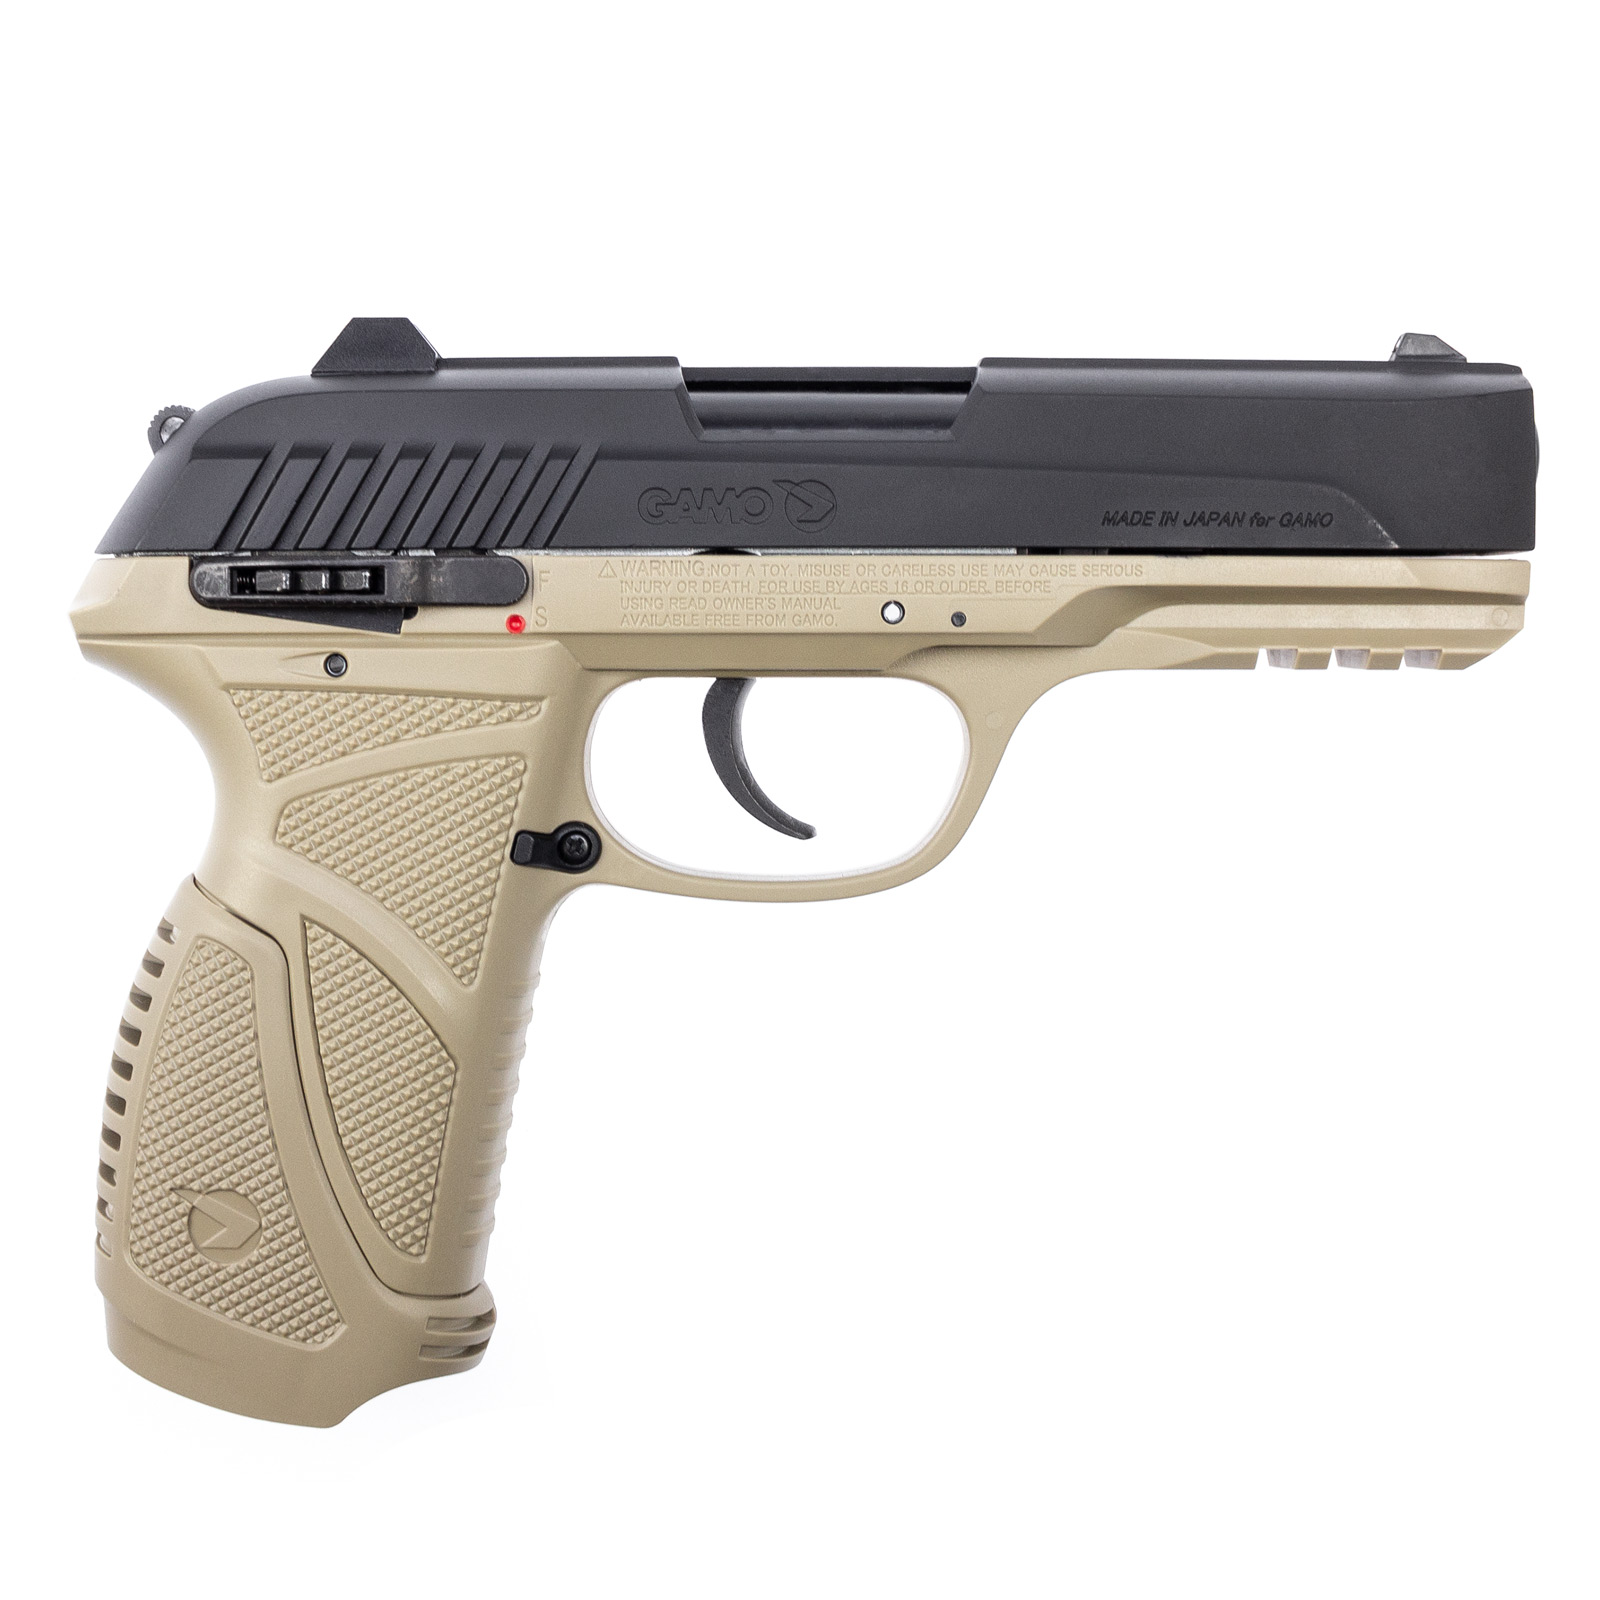 Gamo PT-85 CO2-Pistole Kal. 4,5mm Diabolo, Desert Version